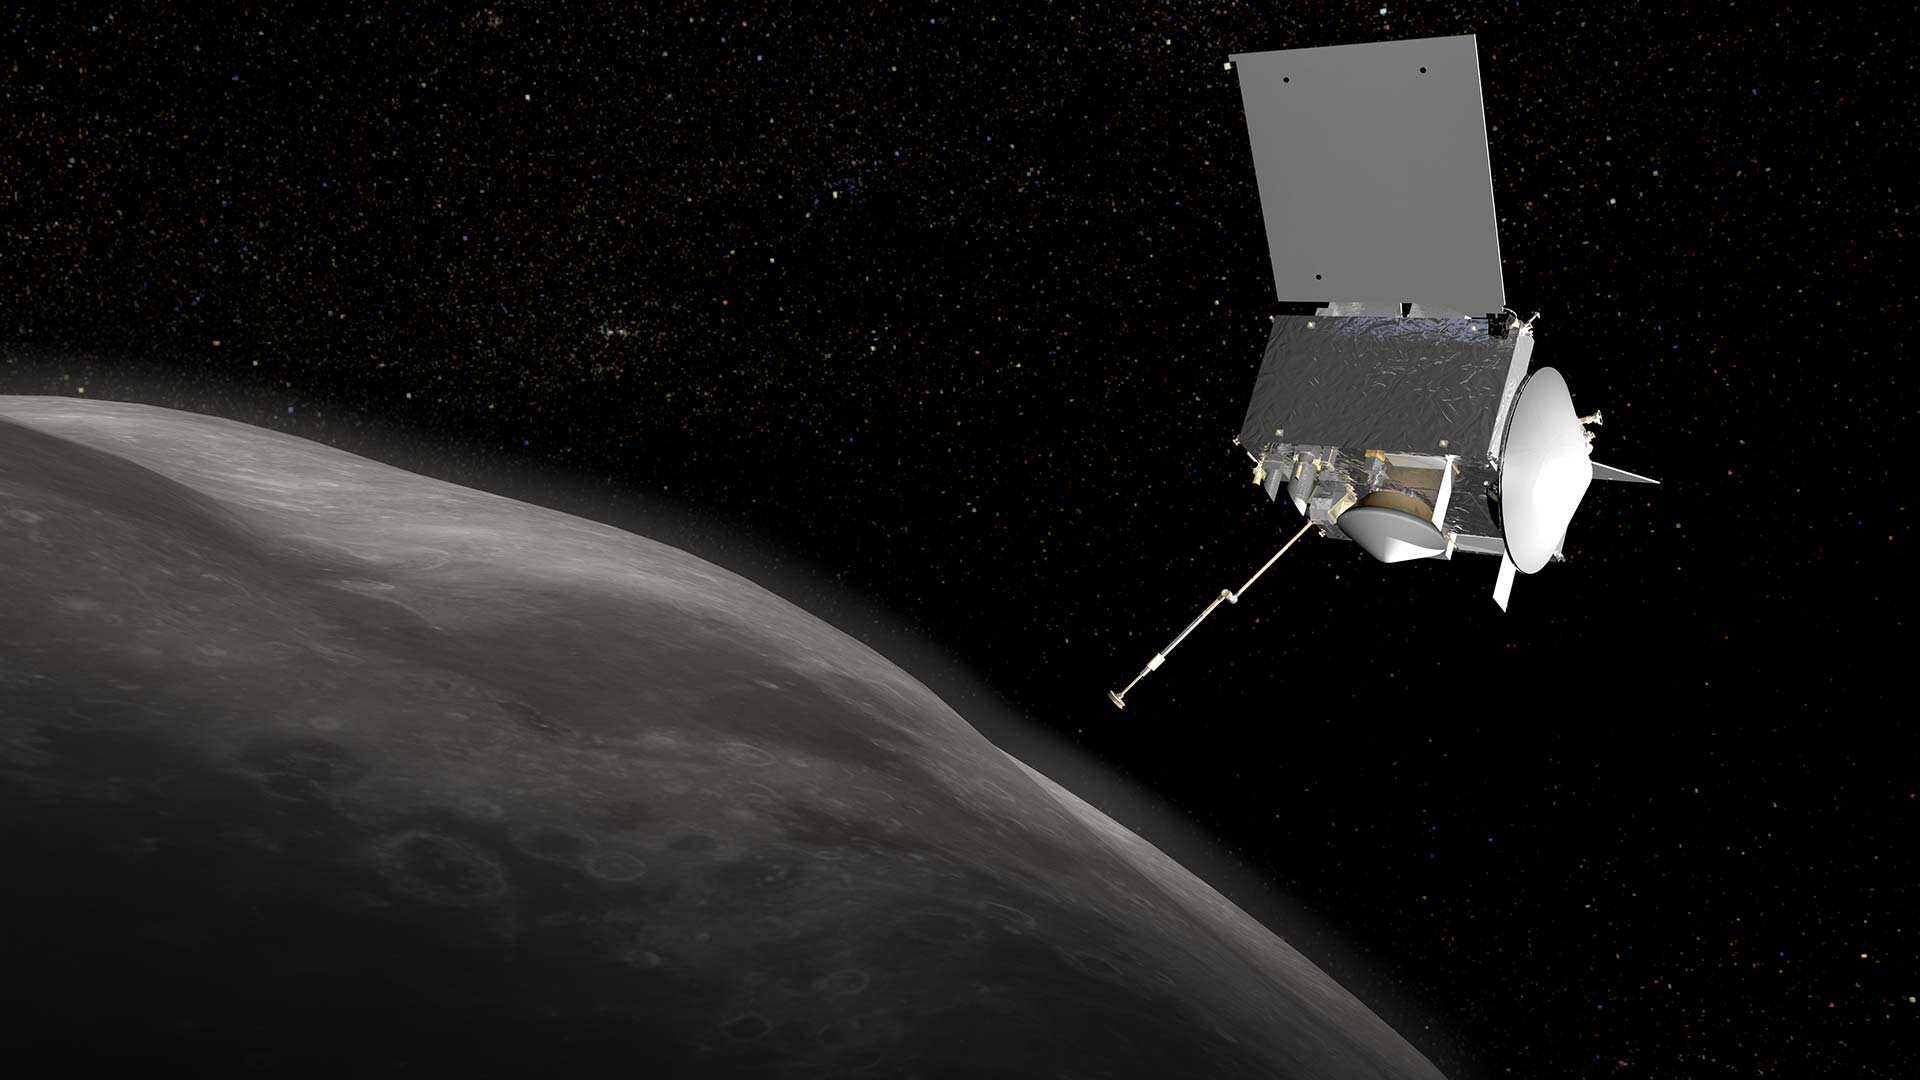 The OSIRIS-REx spacecraft will attempt to sample soil from the surface of the asteroid Bennu.